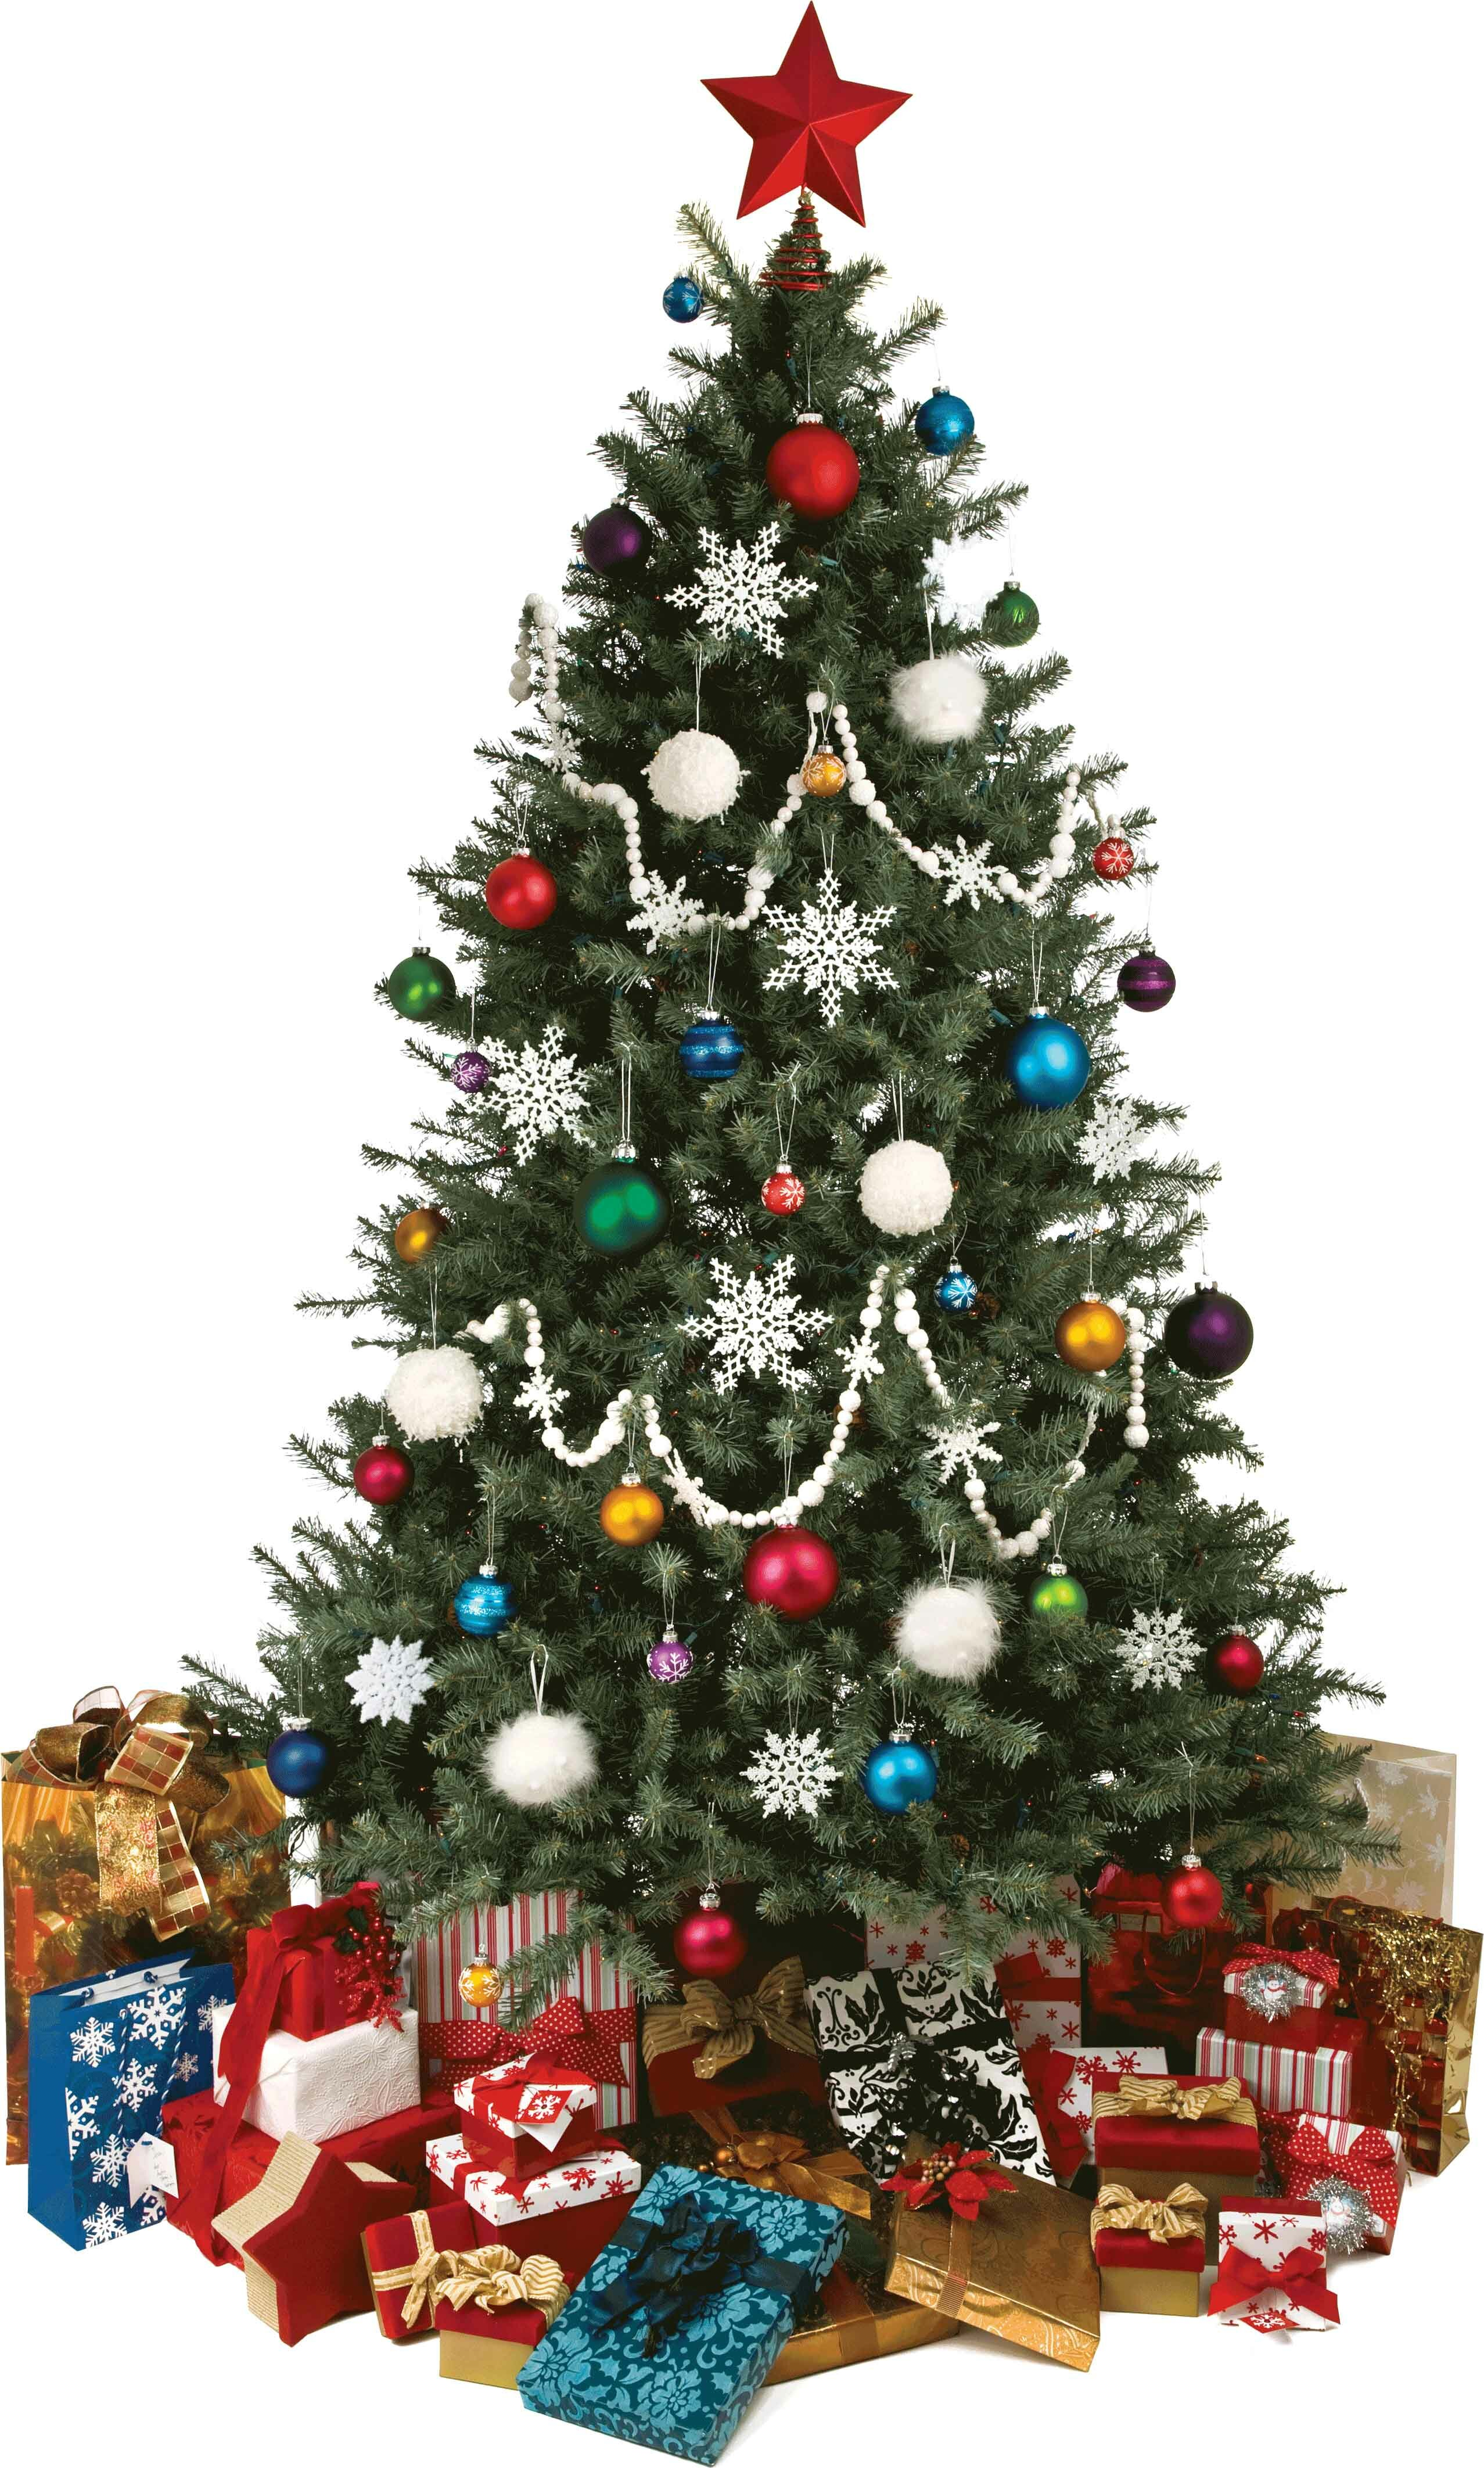 Christmas Tree Cutout.Christmas Tree Cutout Wall Decal